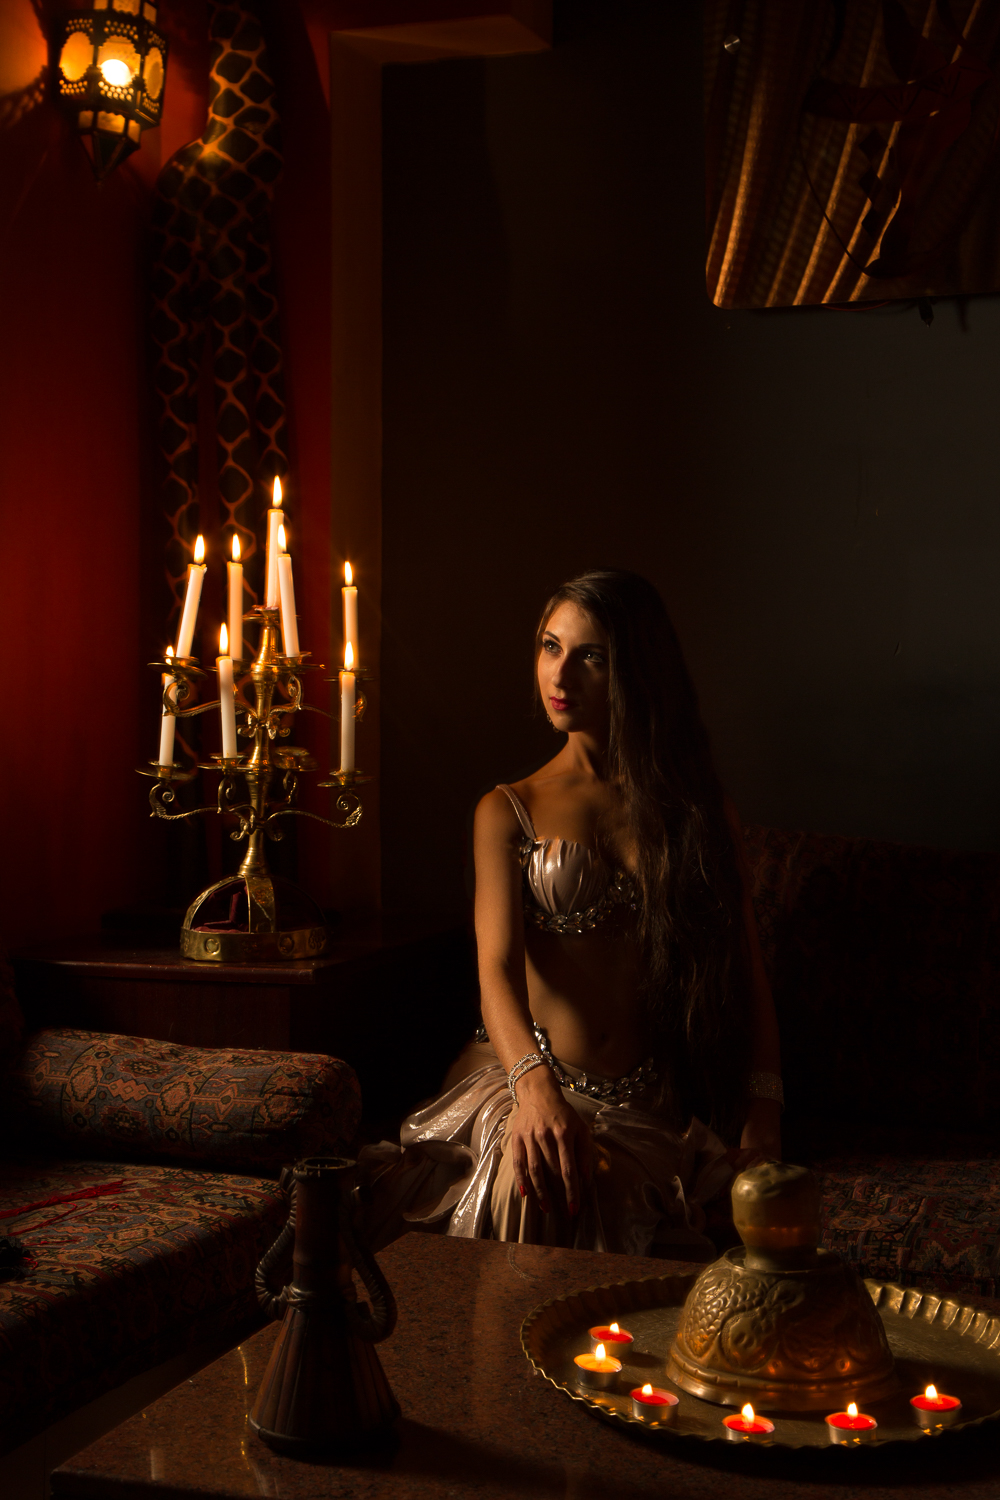 pedro-bonatto-photography-the-orientalist-kristiana.jpg